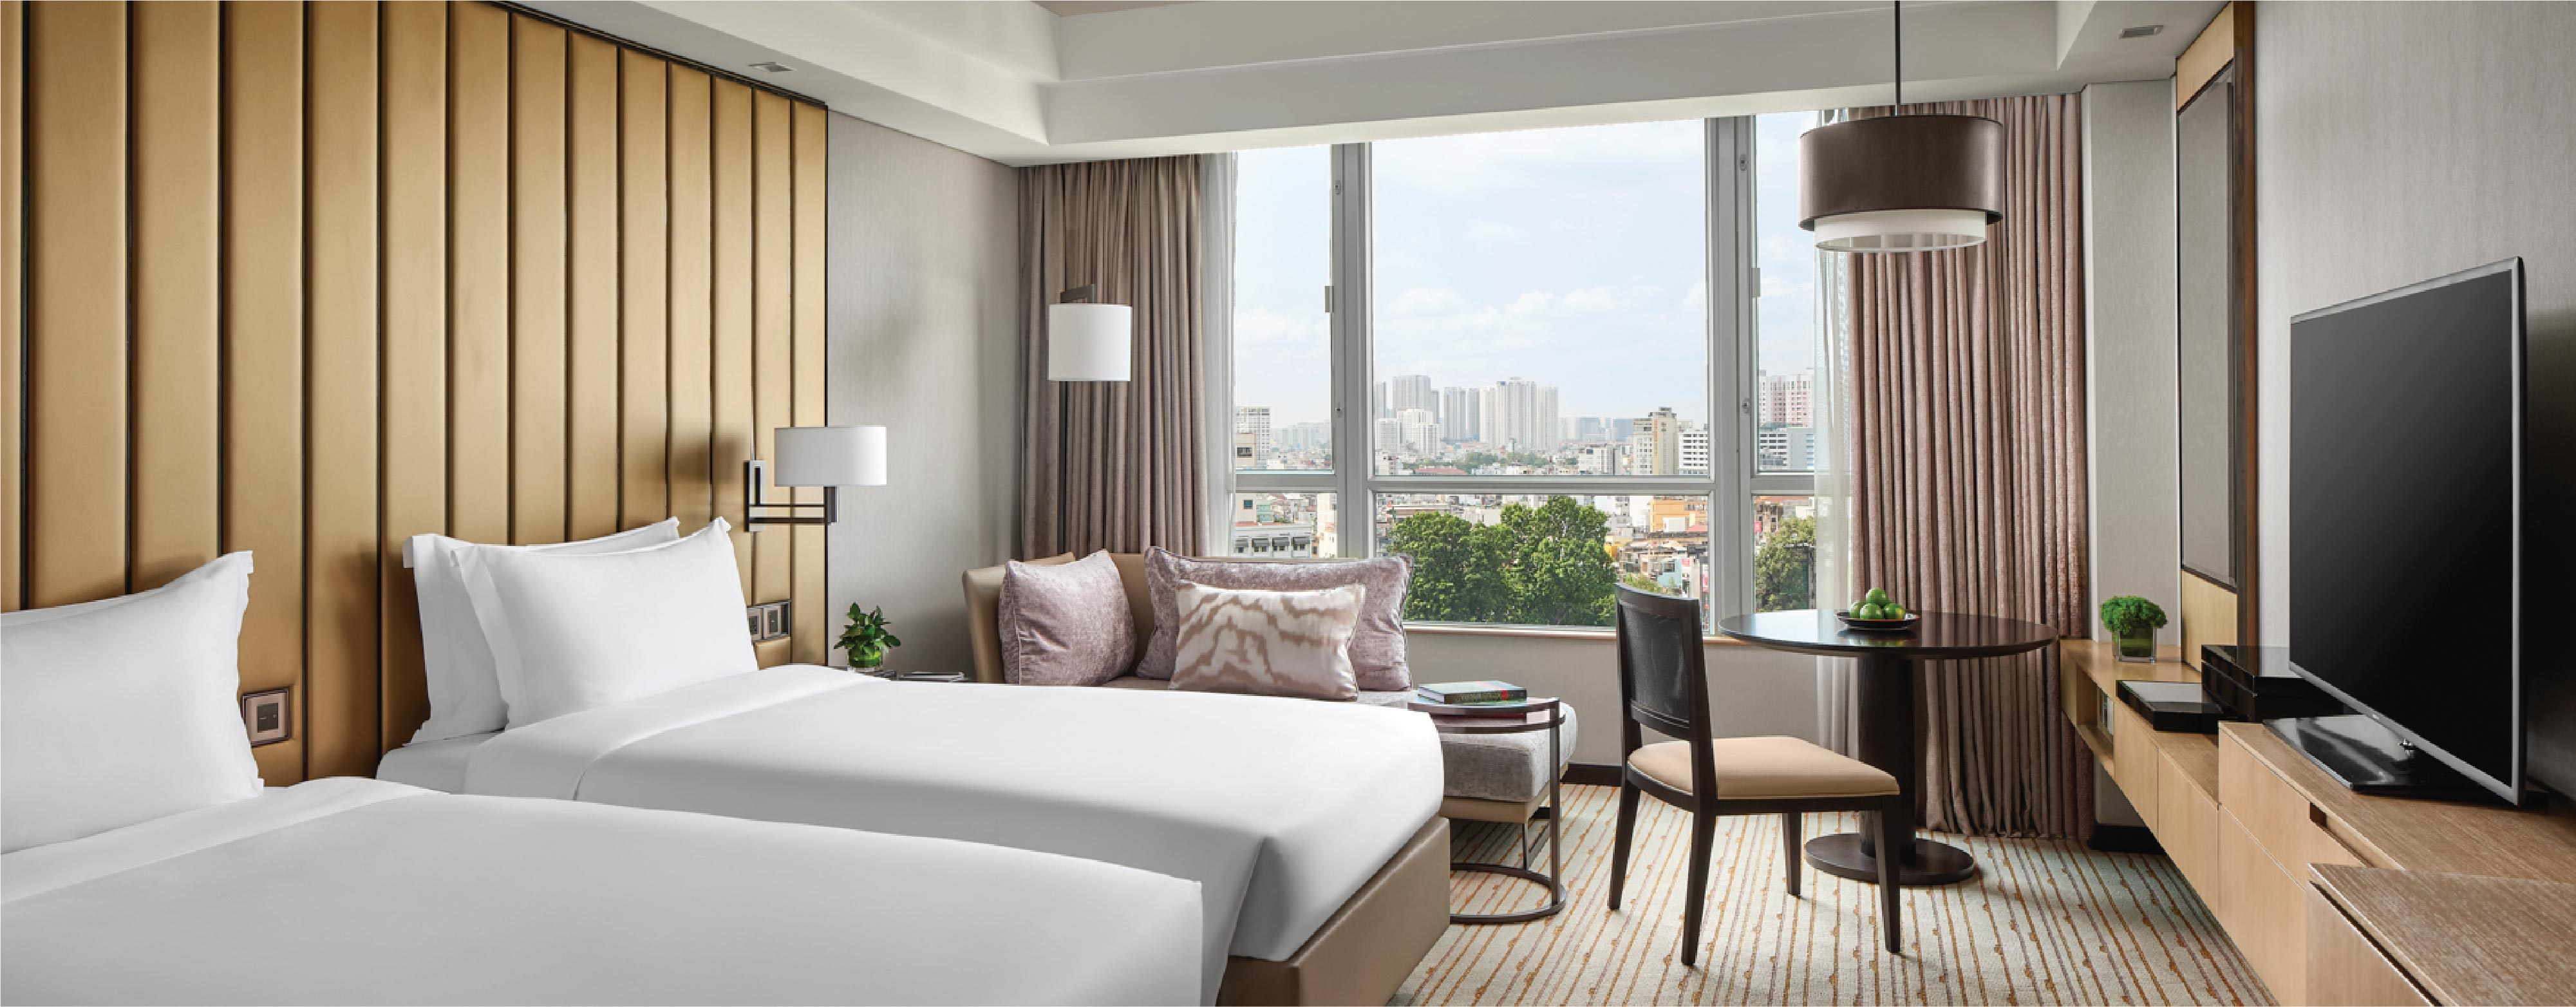 hotel deluxe rooms in saigon